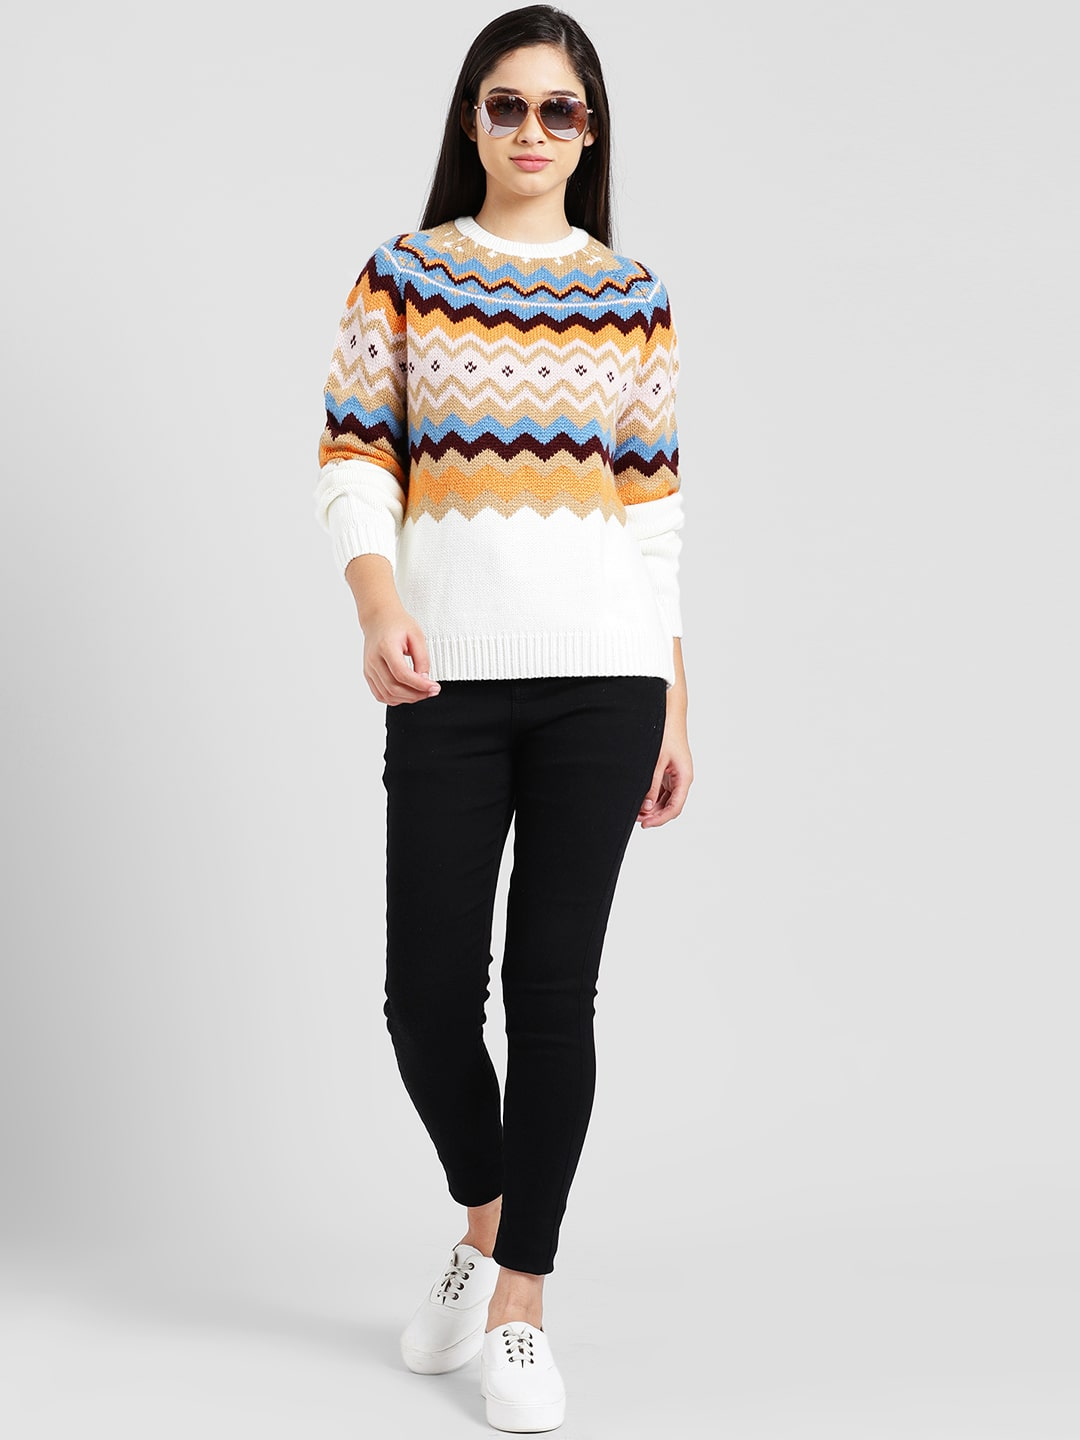 d3d256a54 Buy Zink London Raglan Sweater Top With Aztec Design for Women Online at  Low Prices in India - Paytmmall.com